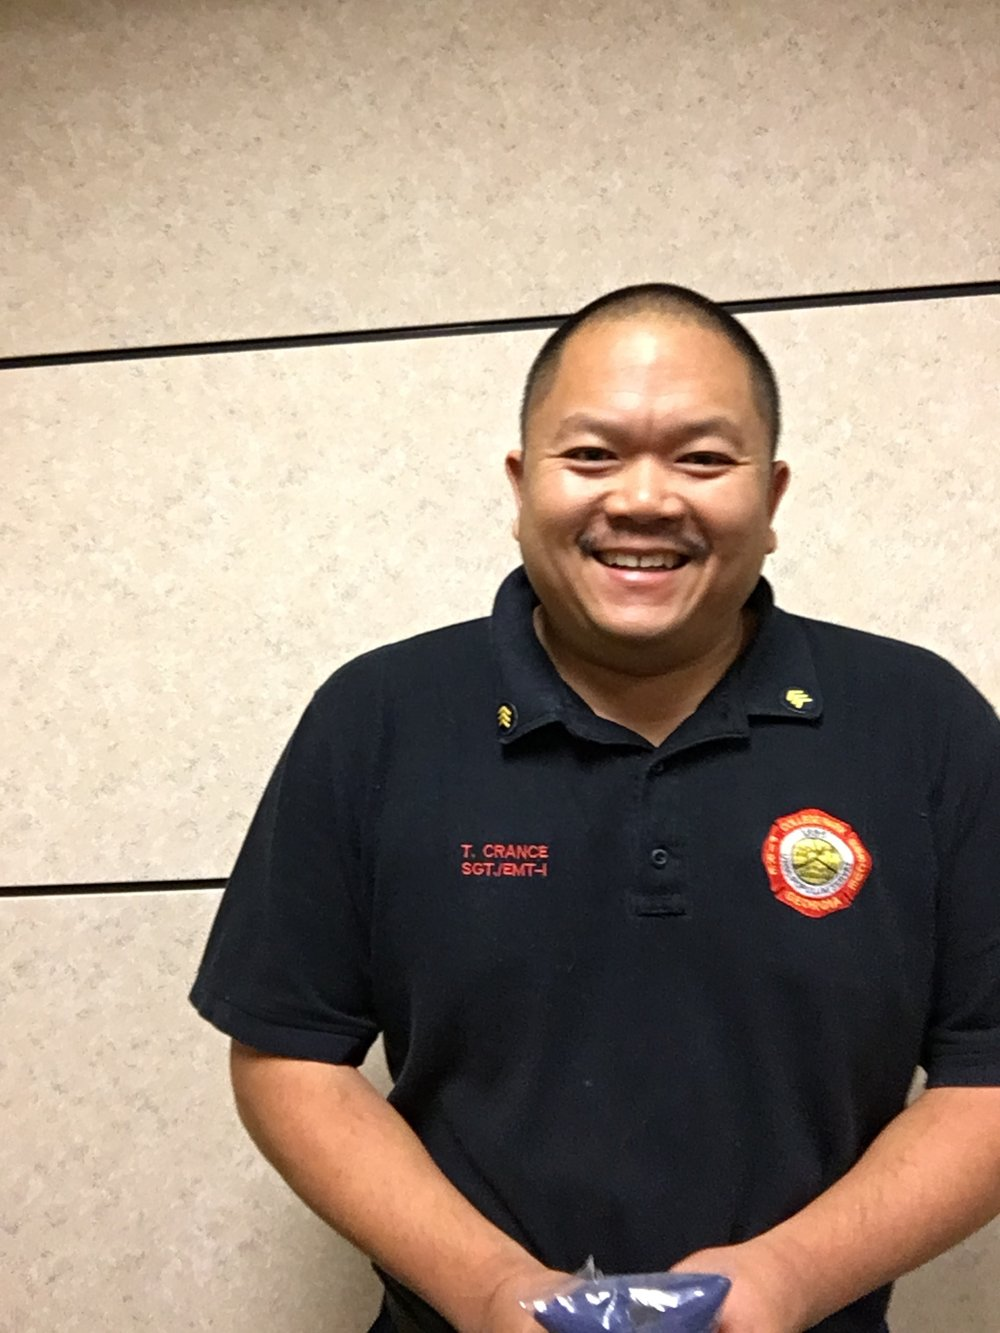 """I would say that after 24 years in the fire service, the First Responder Sleep Recovery training is the most beneficial and informative class I have taken and highly recommend this class to everyone! "" -Sergeant Crance, College Park FD, College Park, GA -"